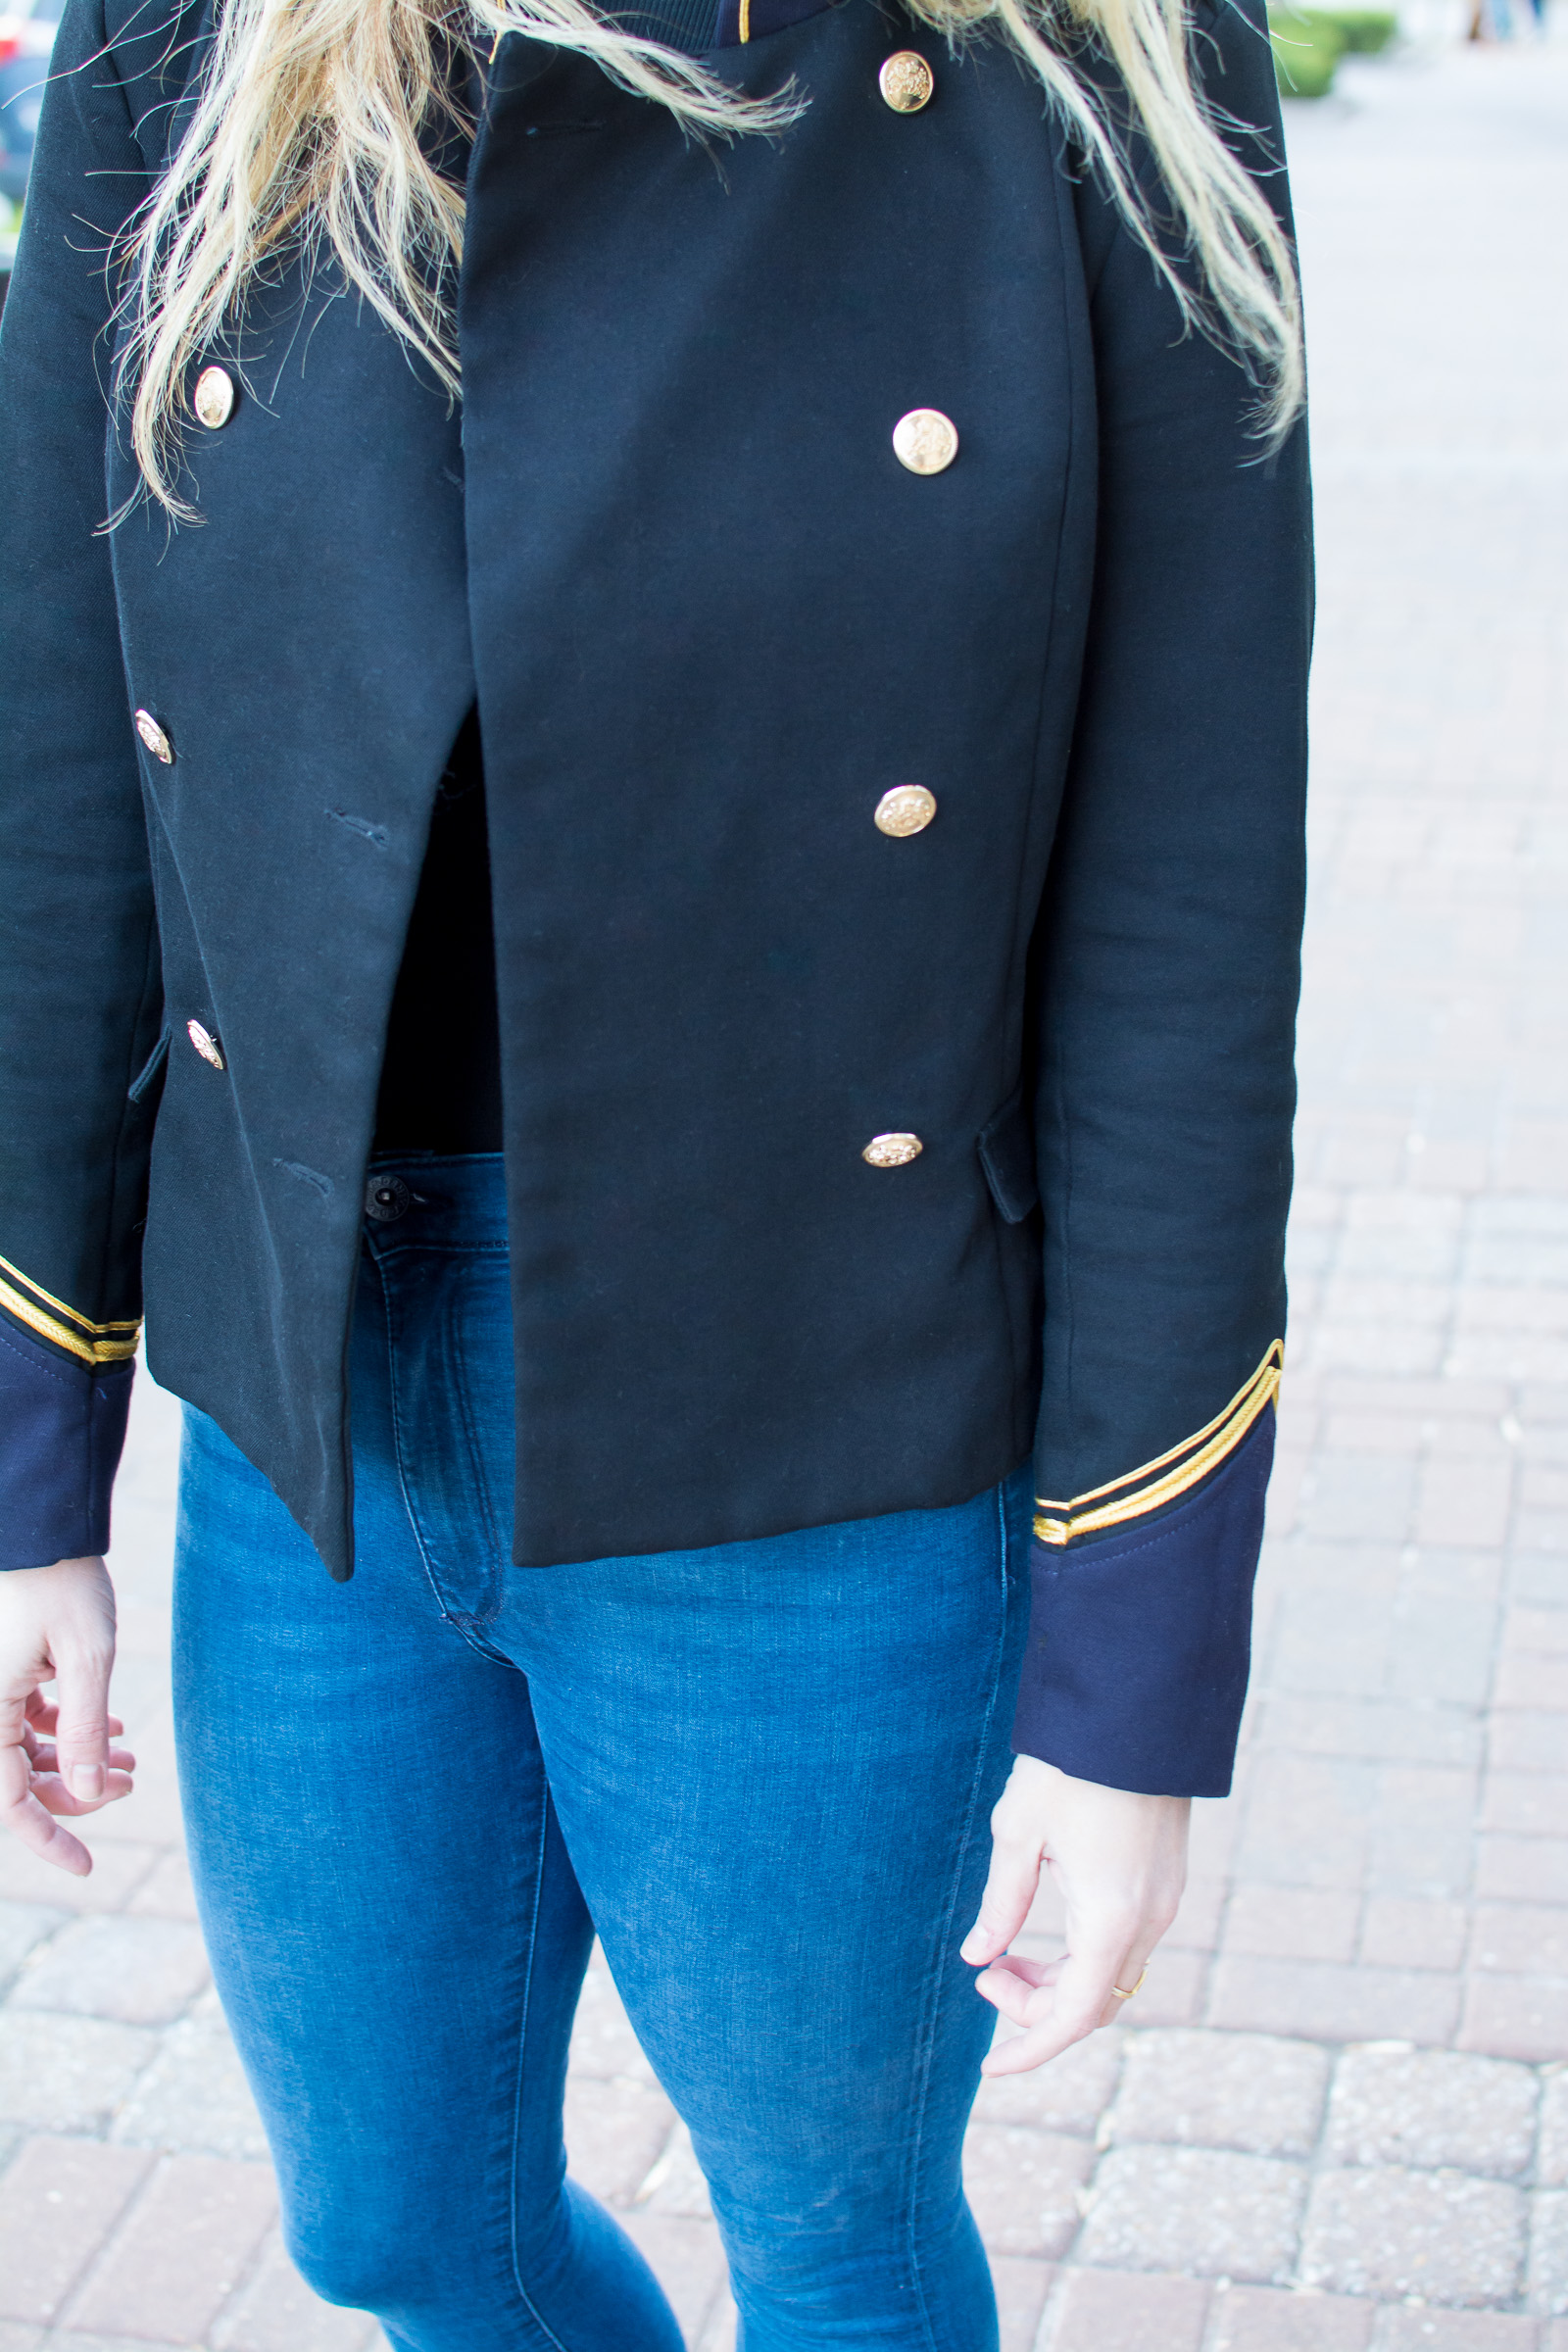 Military Jacket. | Ashley from Le Stylo Rouge